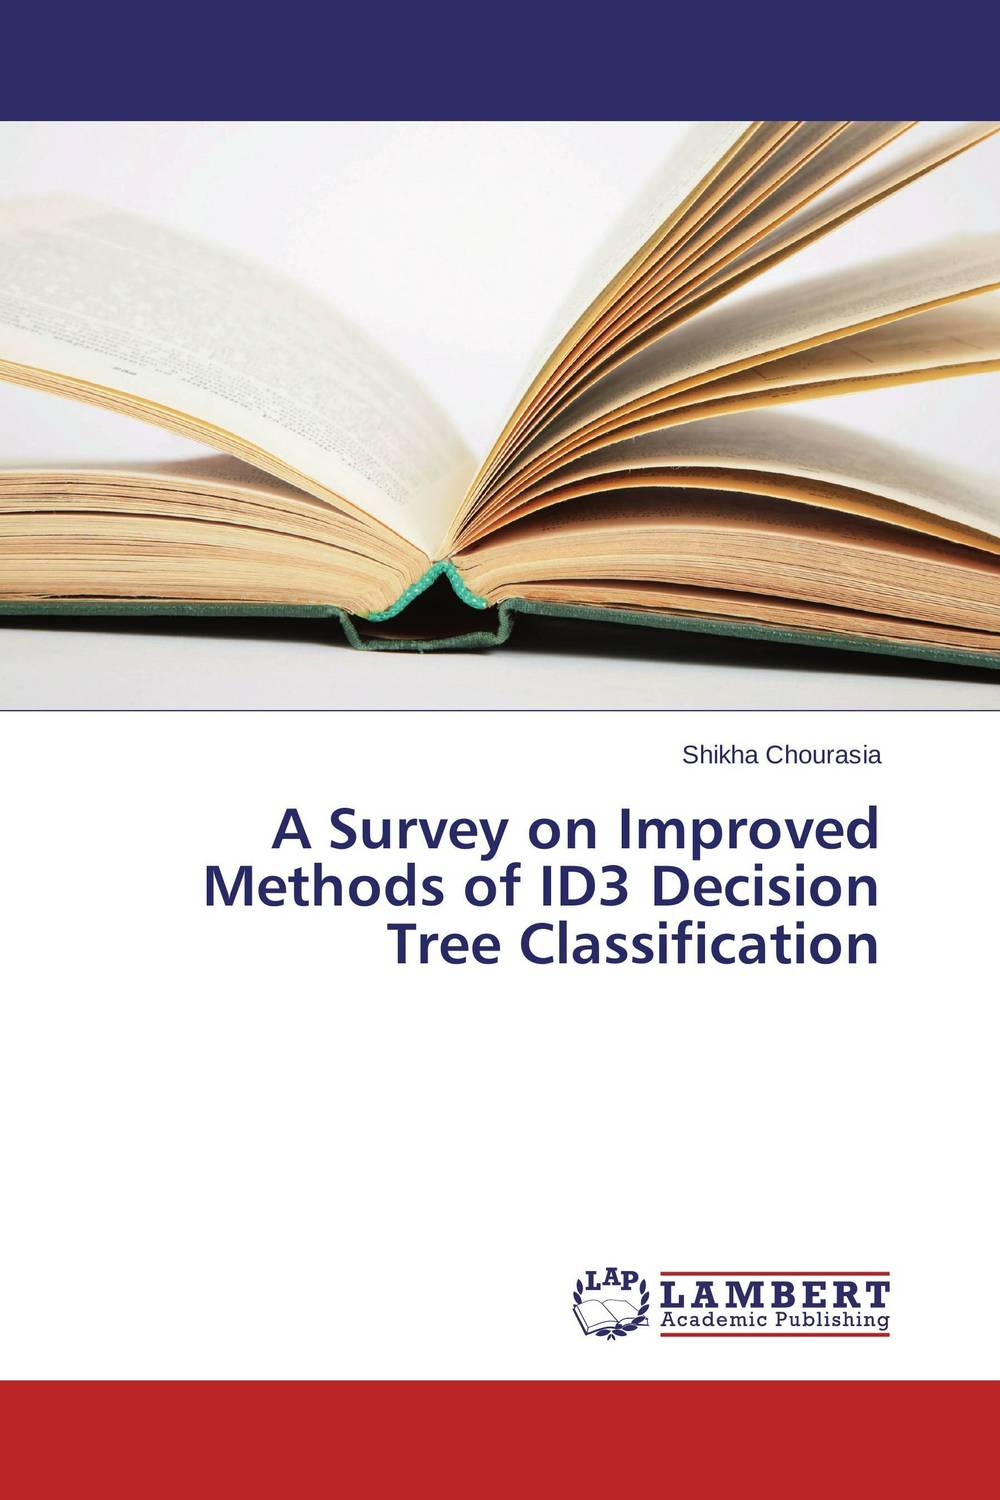 A Survey on Improved Methods of ID3 Decision Tree Classification the halloween tree